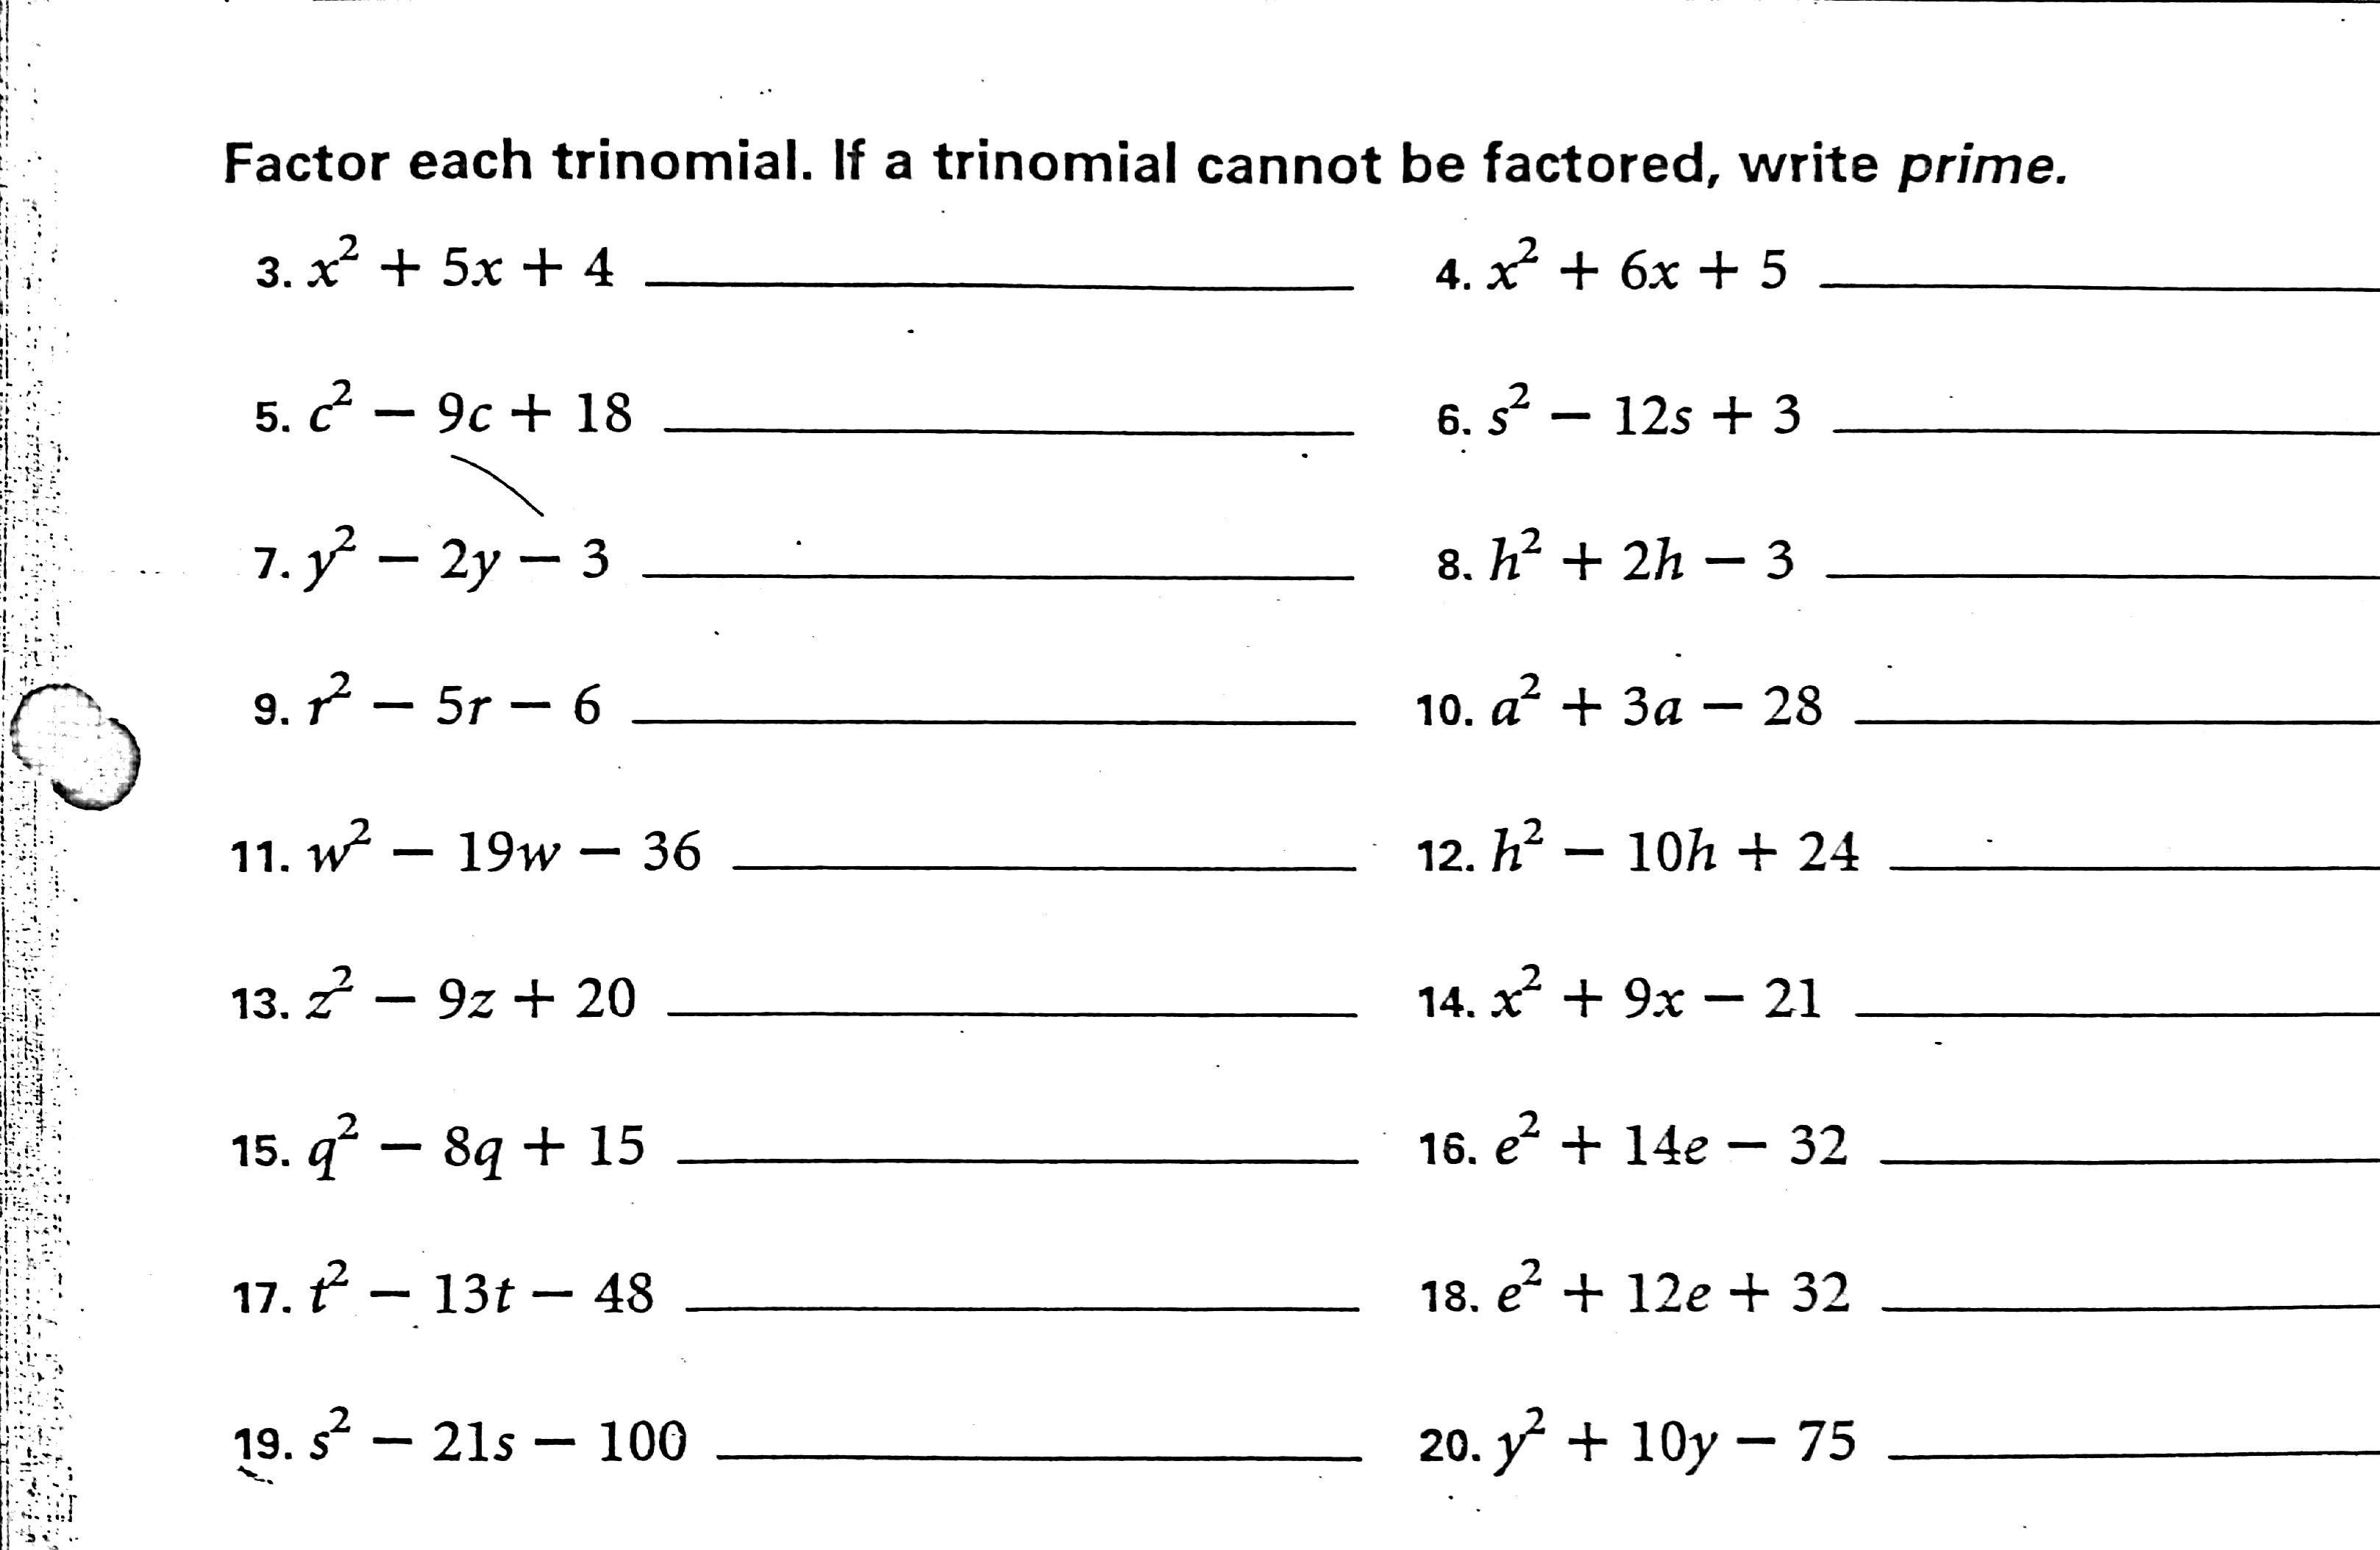 Proatmealus  Inspiring Factoring Worksheet  Delwfgcom With Lovable Factoring Polynomials Practice Worksheet With Answers Coterraneo With Beauteous Subtracting Polynomials Worksheet Also Citizenship In The World Merit Badge Worksheet In Addition Zscore Worksheet And Worksheet Conservation Of Momentum As Well As Inverse Function Worksheet Additionally St Grade Printable Worksheets From Delwfgcom With Proatmealus  Lovable Factoring Worksheet  Delwfgcom With Beauteous Factoring Polynomials Practice Worksheet With Answers Coterraneo And Inspiring Subtracting Polynomials Worksheet Also Citizenship In The World Merit Badge Worksheet In Addition Zscore Worksheet From Delwfgcom